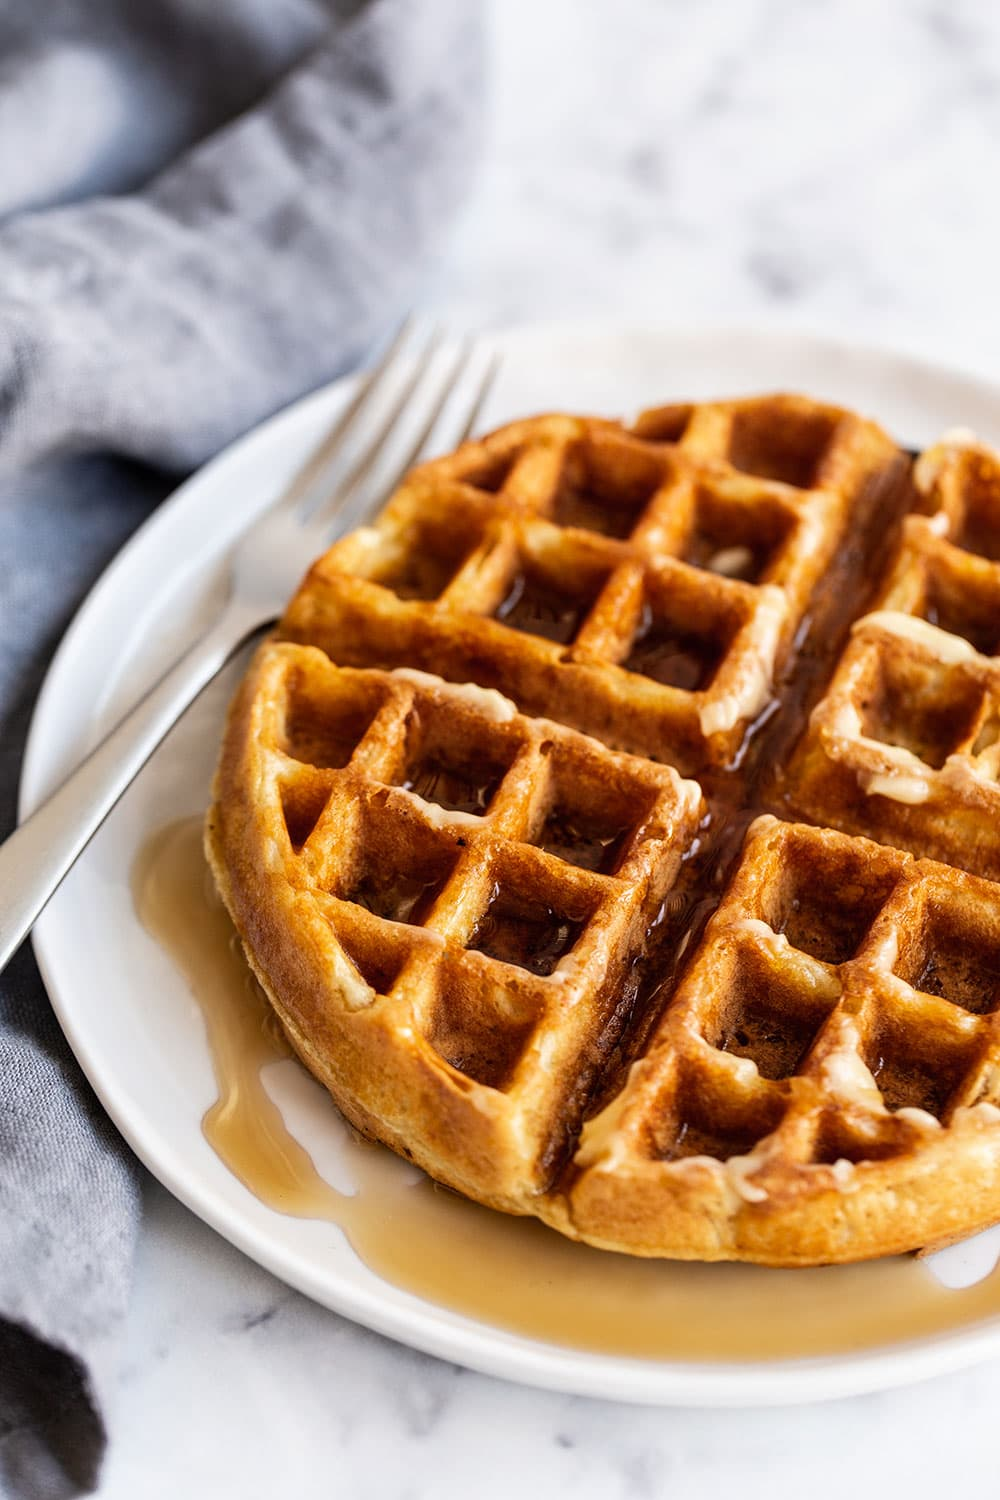 Homemade Belgian waffle on a plate with maple syrup